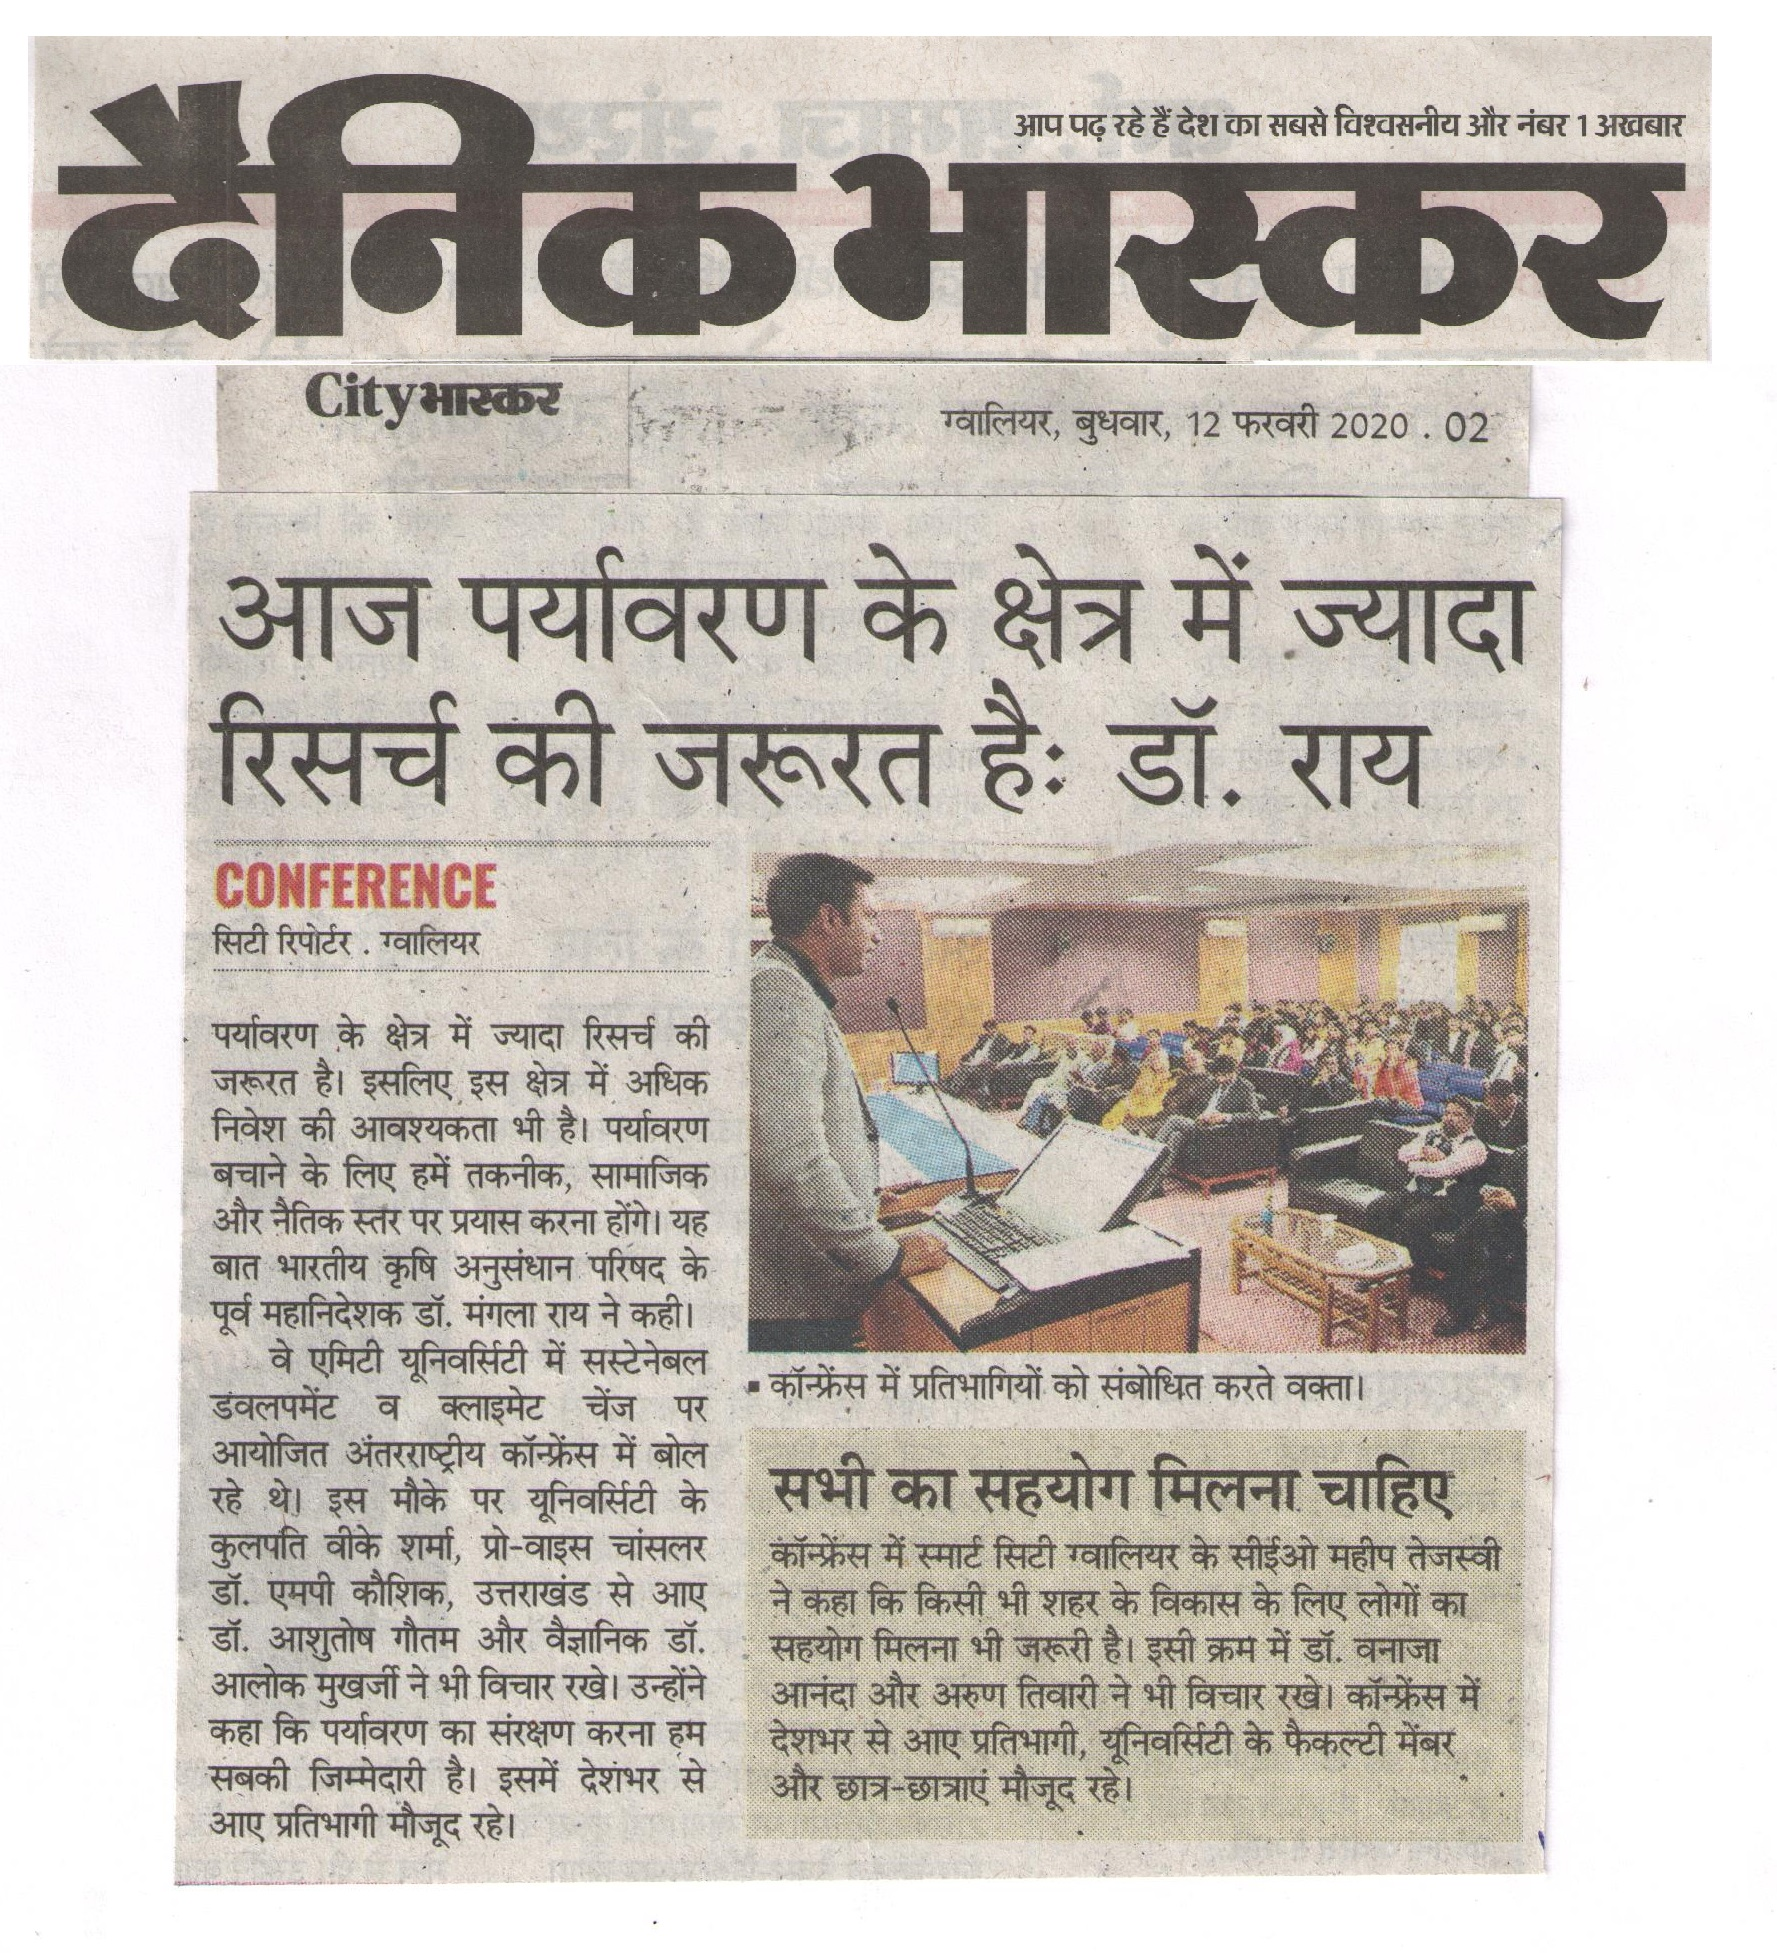 Dainik Bhaskar-12.2.2020-AUMP National Conference on Sustainable Development and Climate Change-Amity